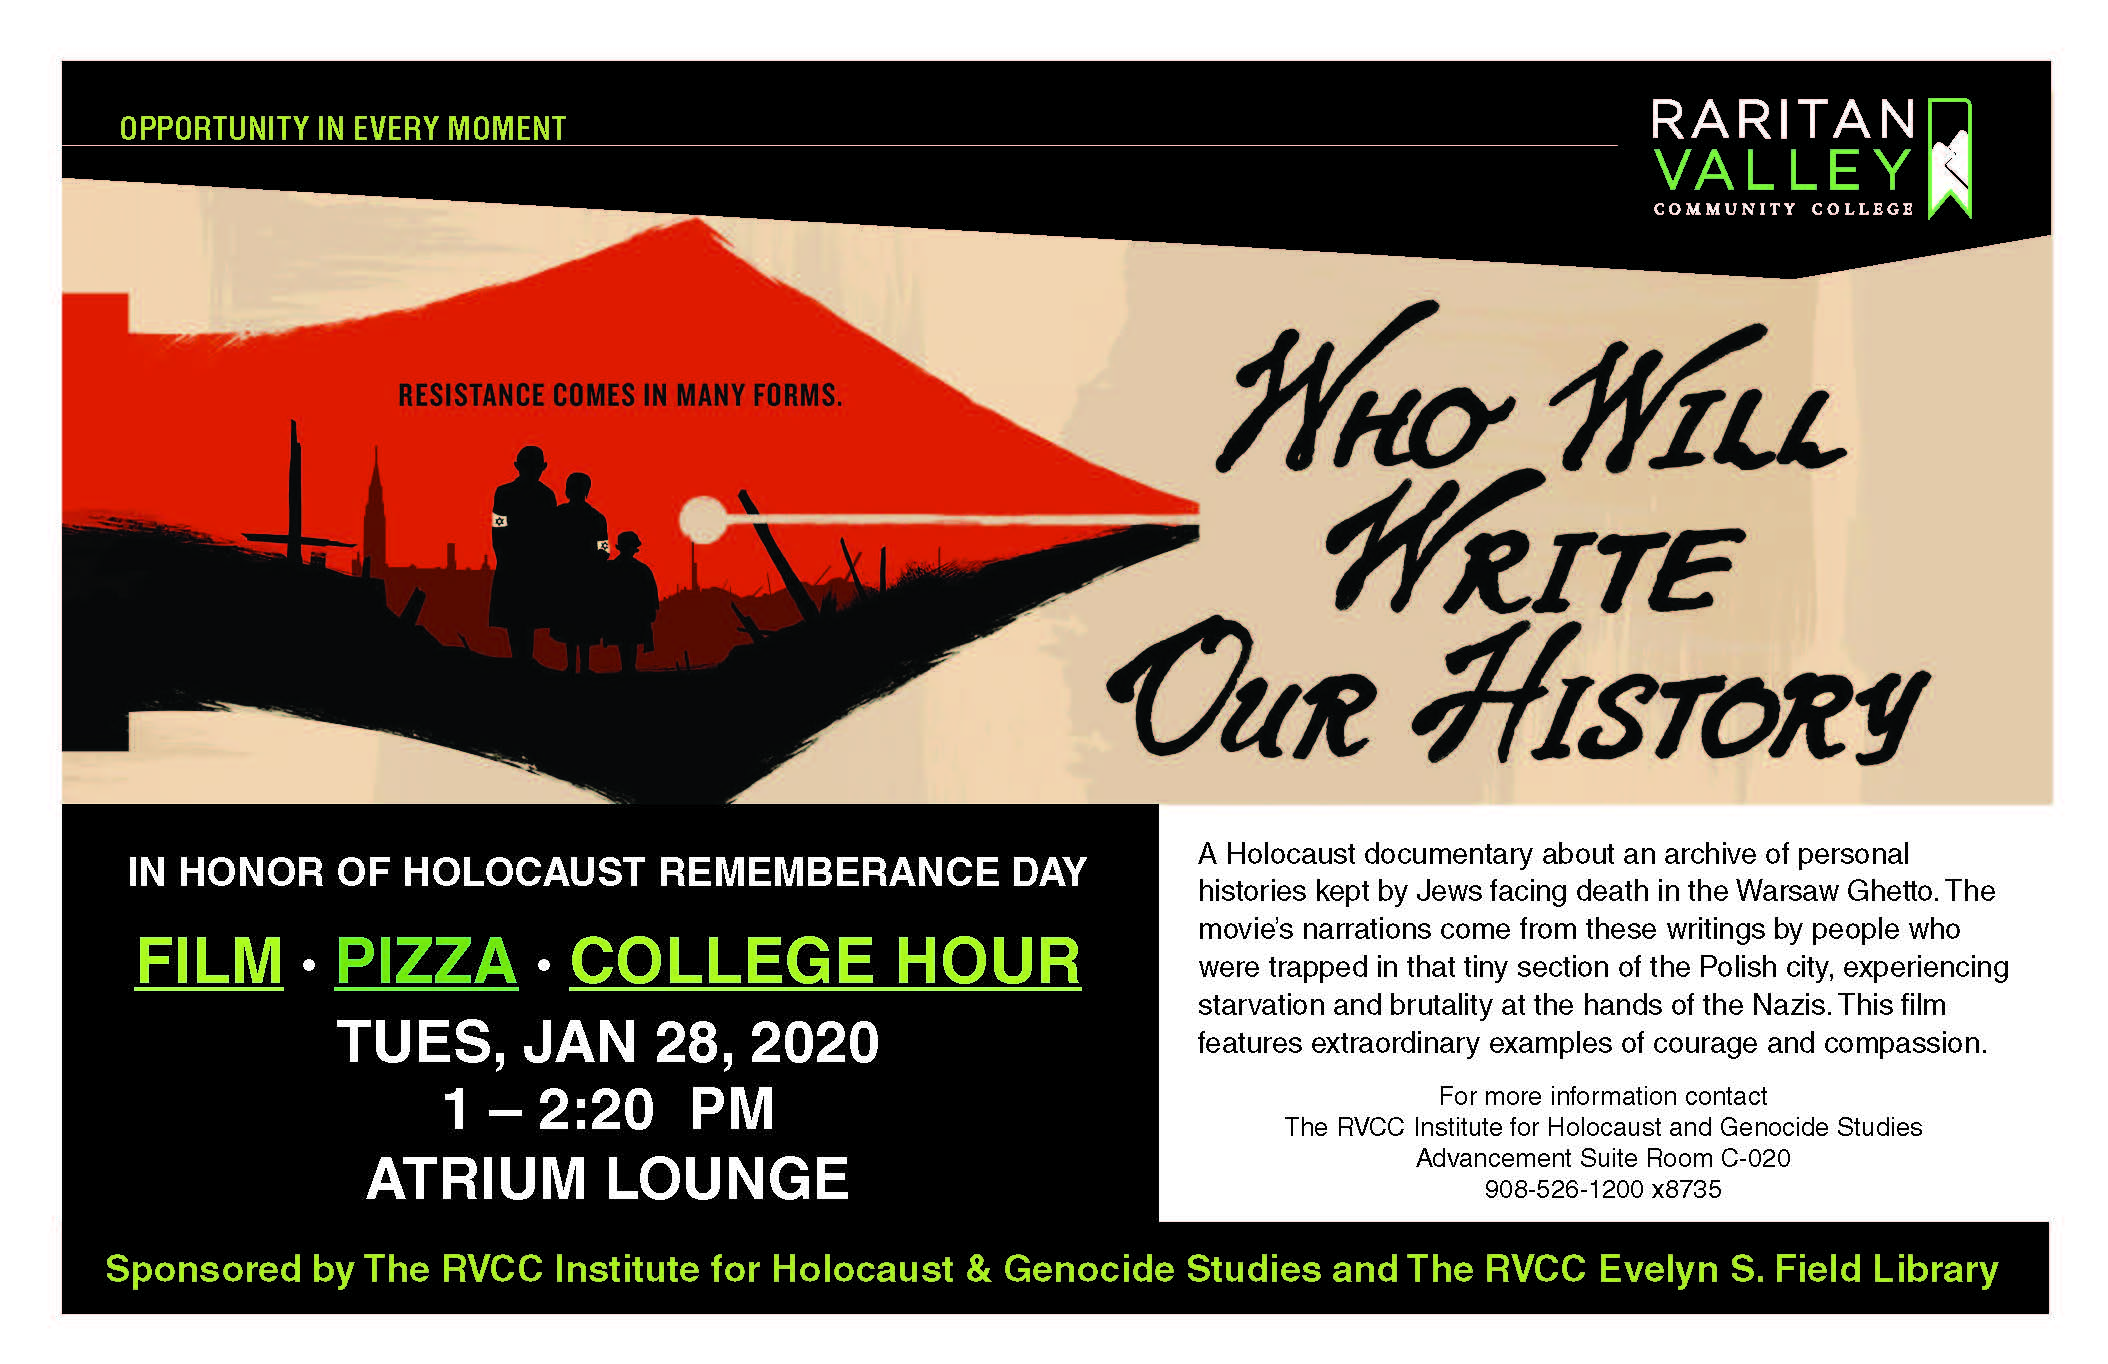 who will write our history film screening